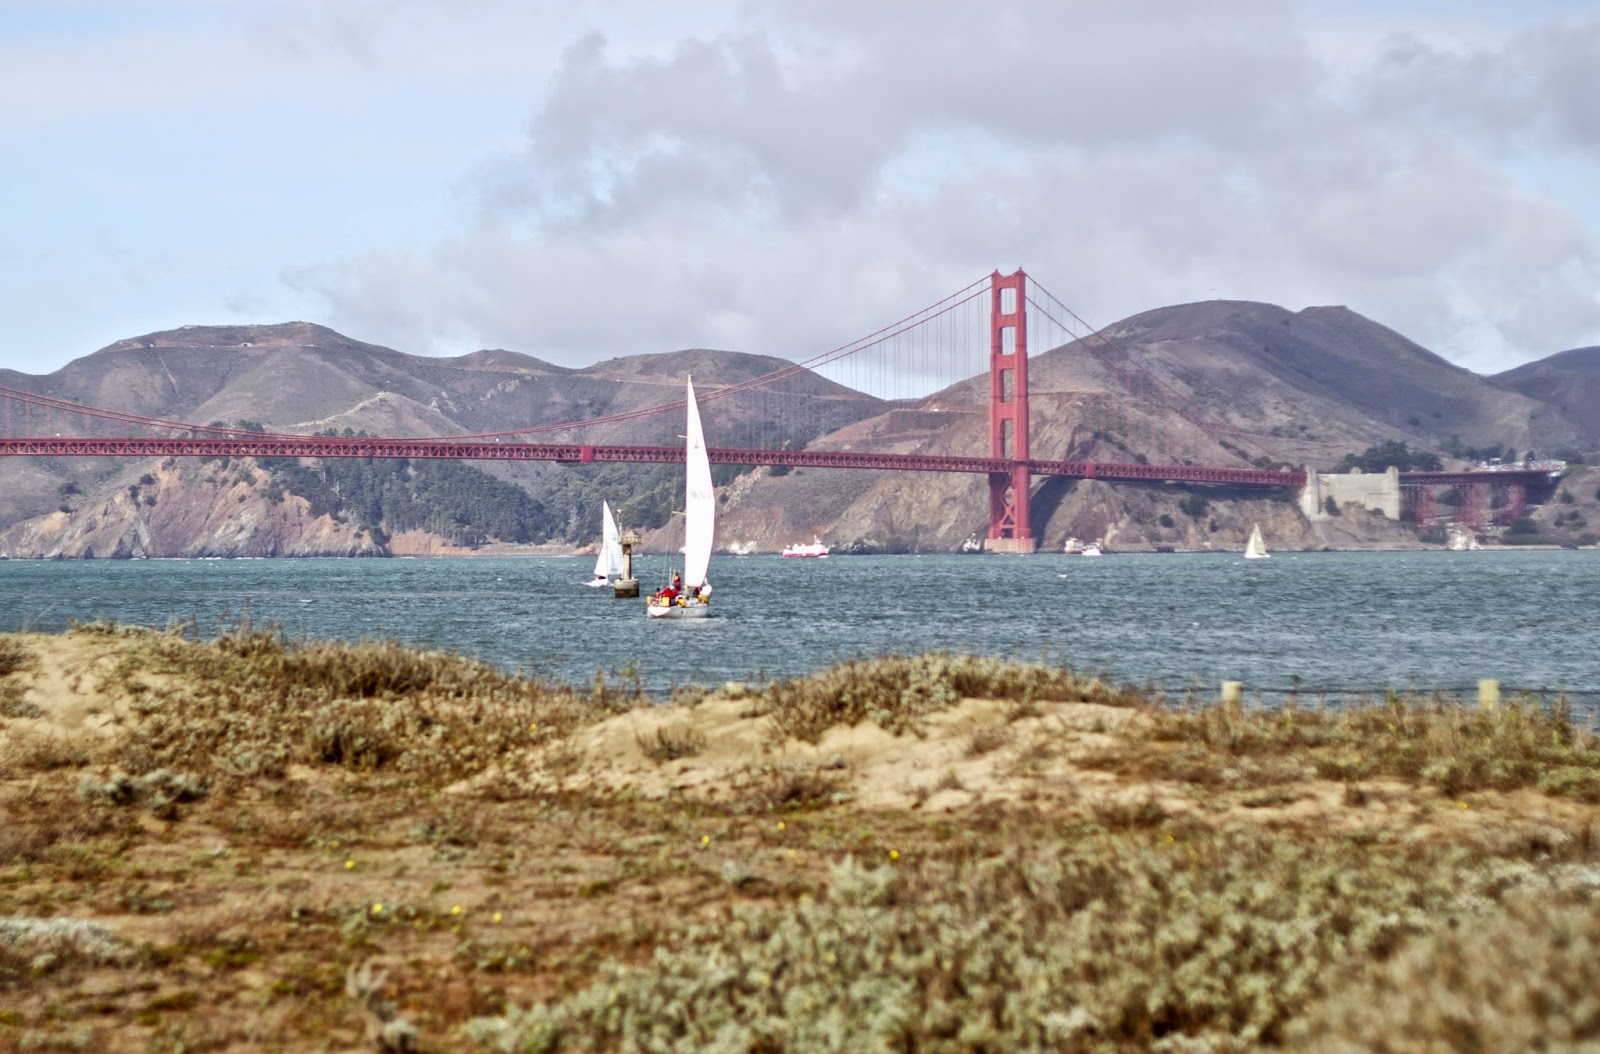 Where to see the Golden Gate Bridge